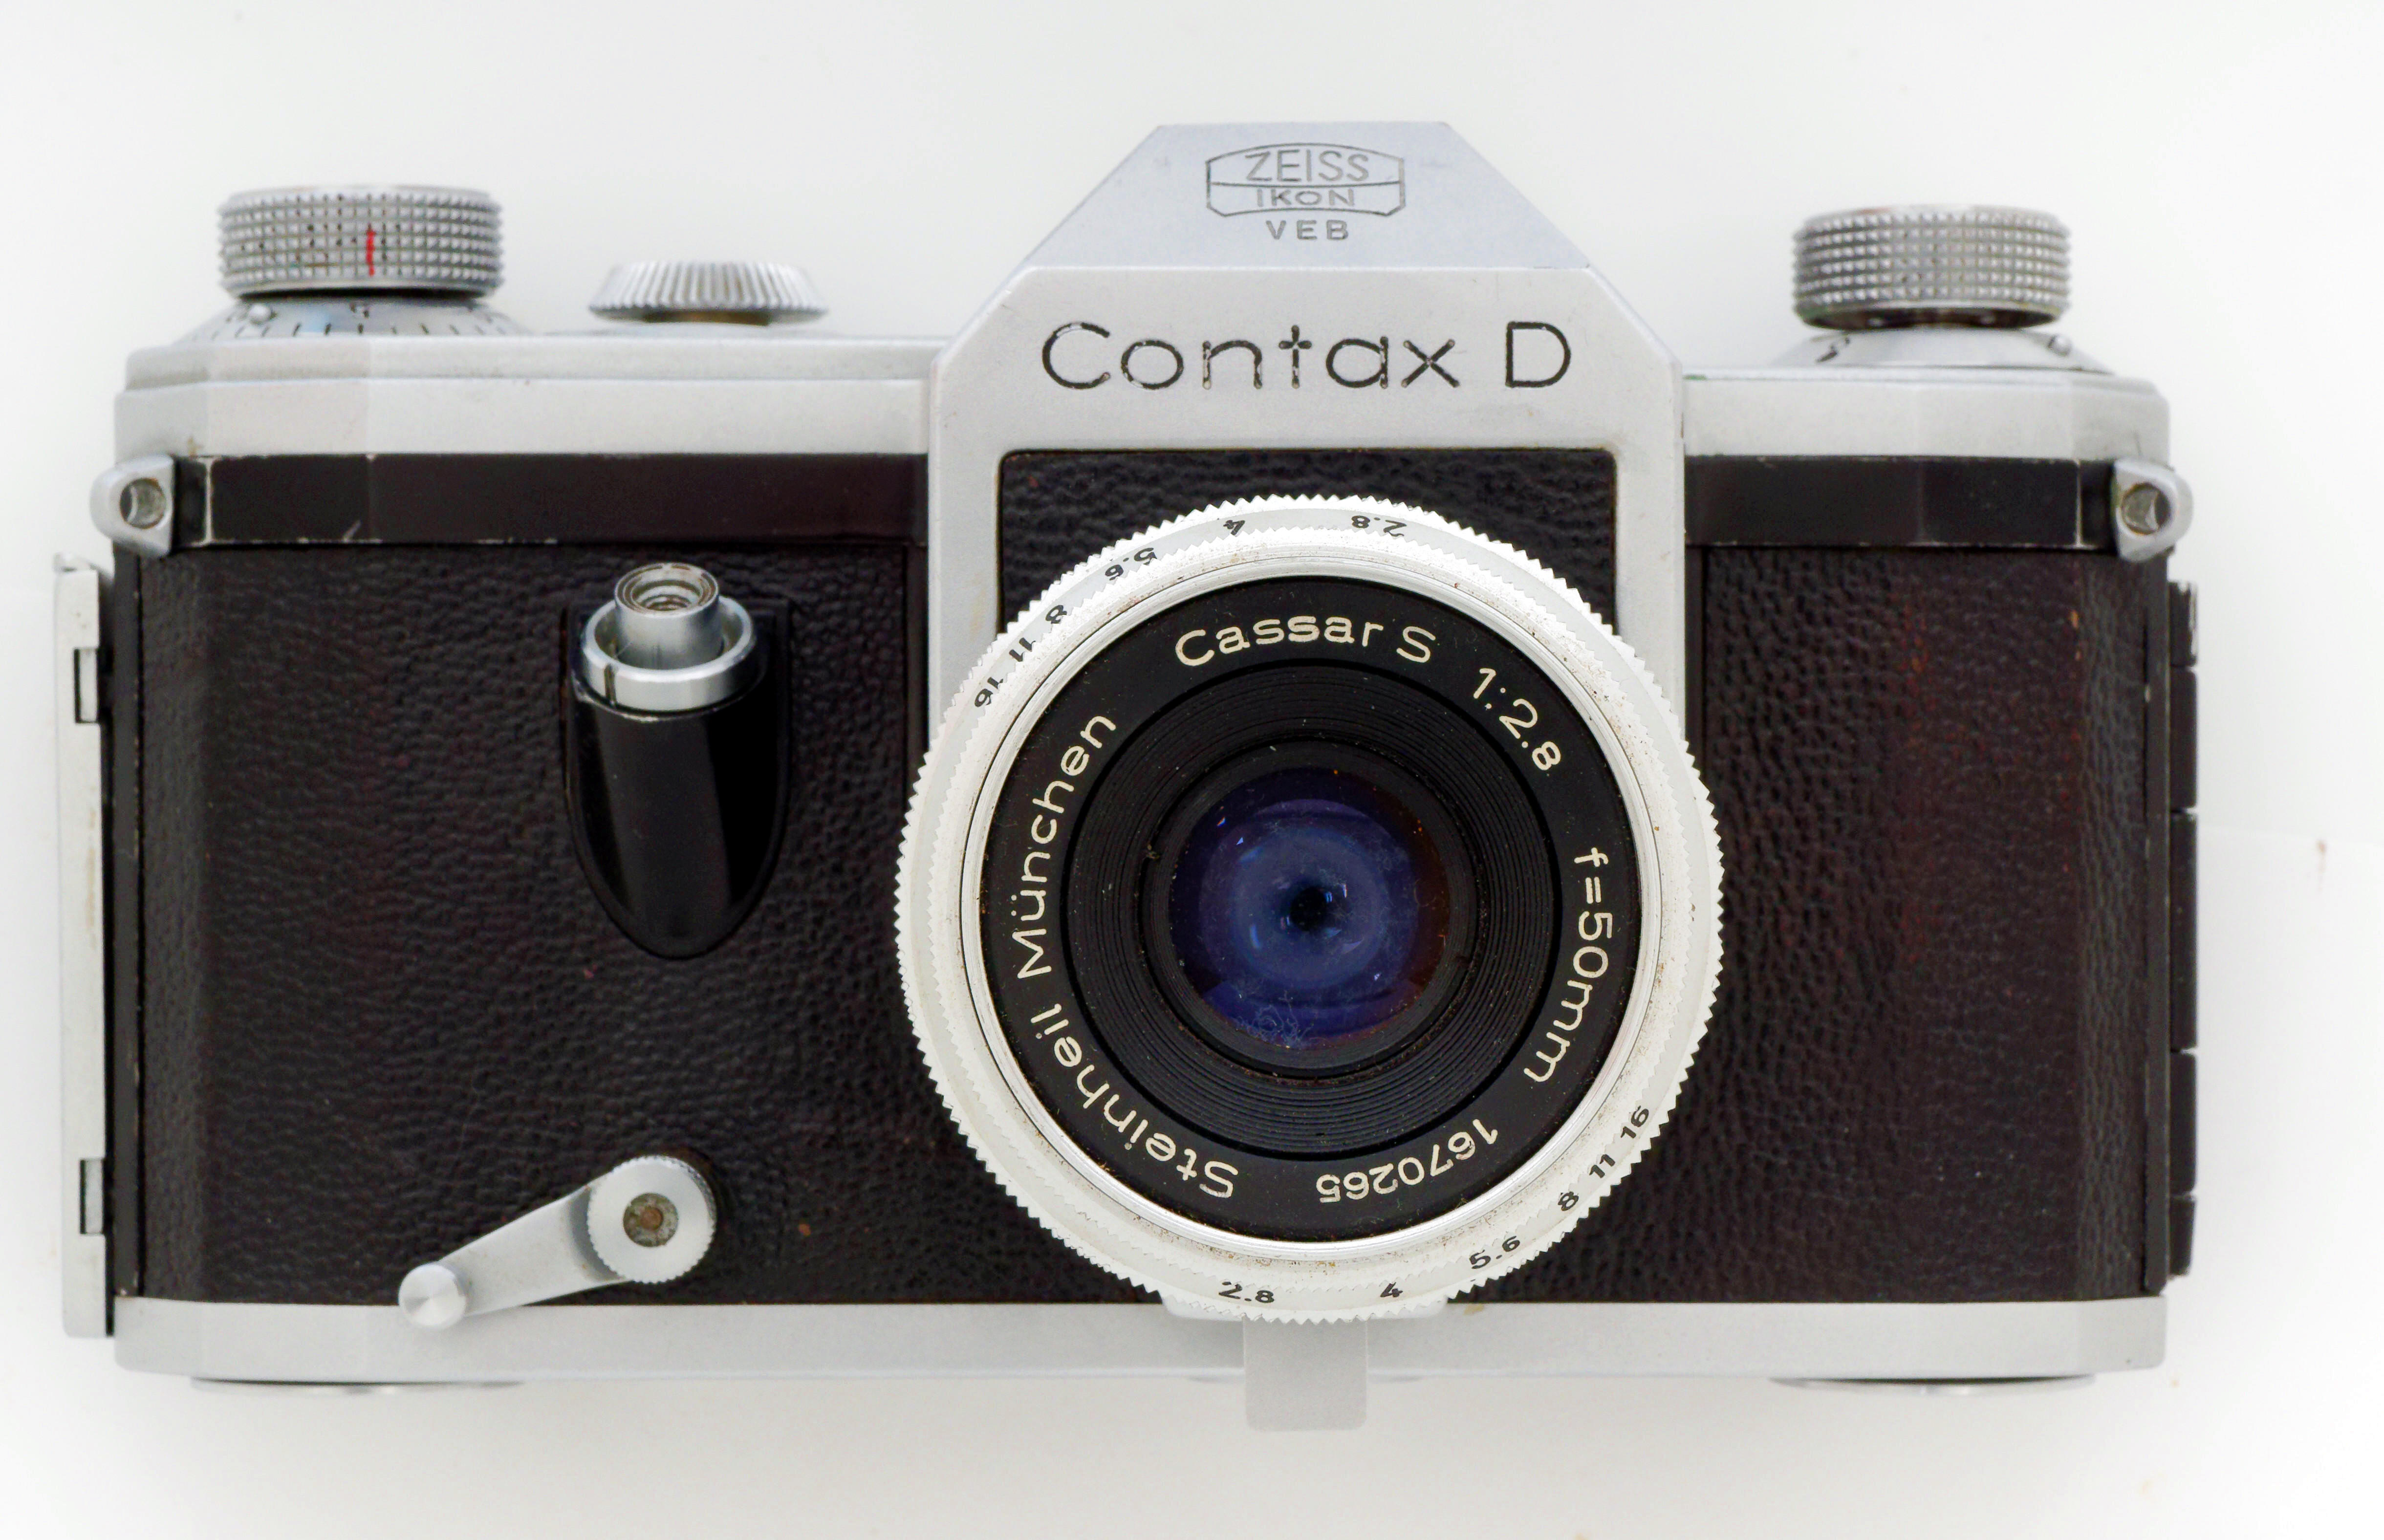 This should be Contax-D-1.jpeg.  Is it missing?